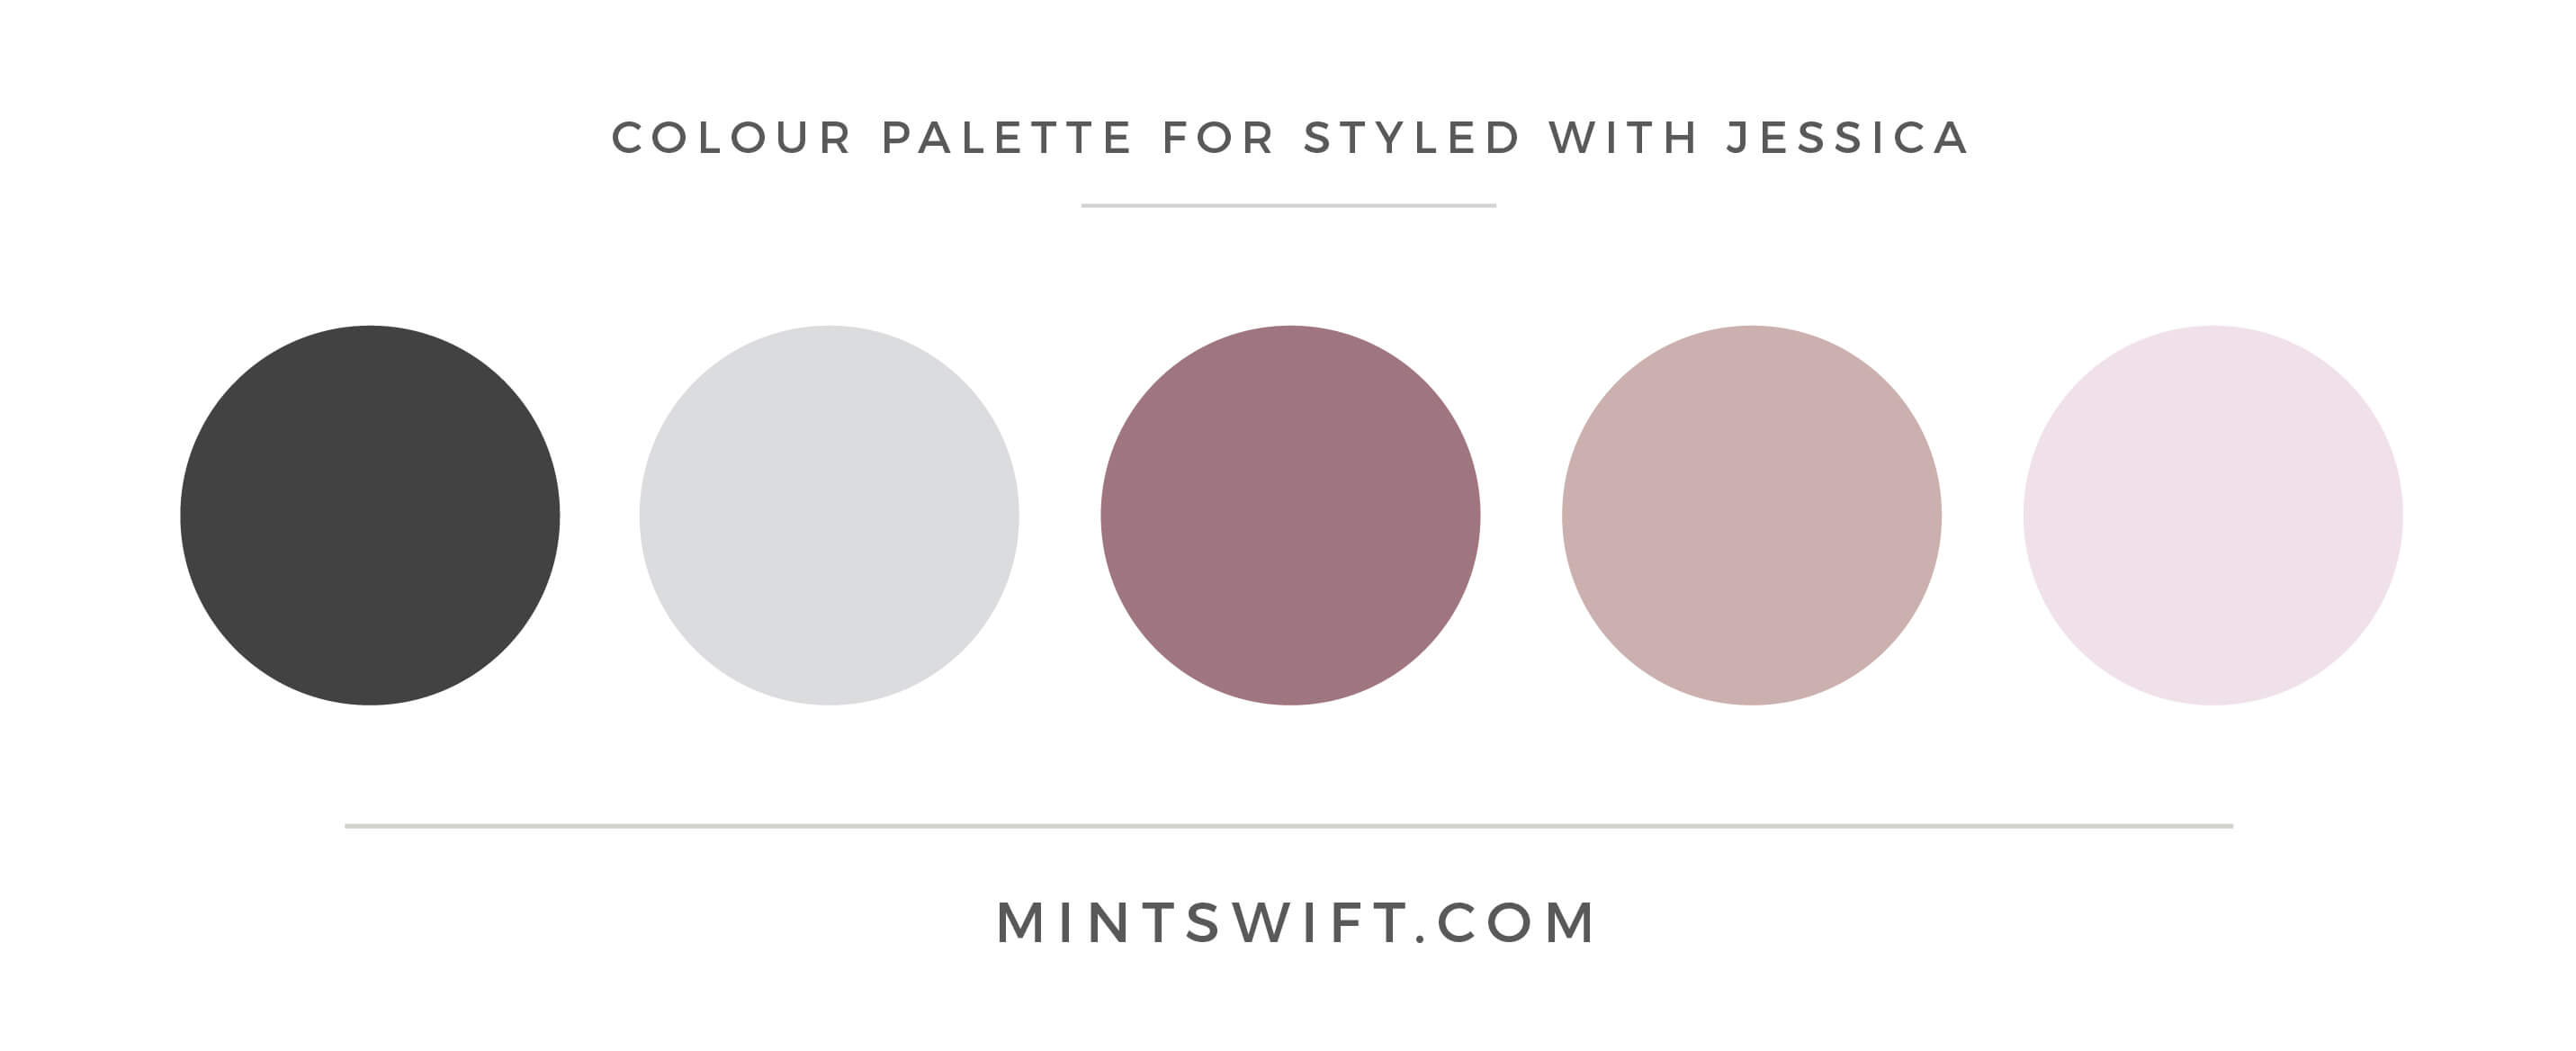 Get Styled with Jessica - Colour Palette - Brand Design Package - MintSwift